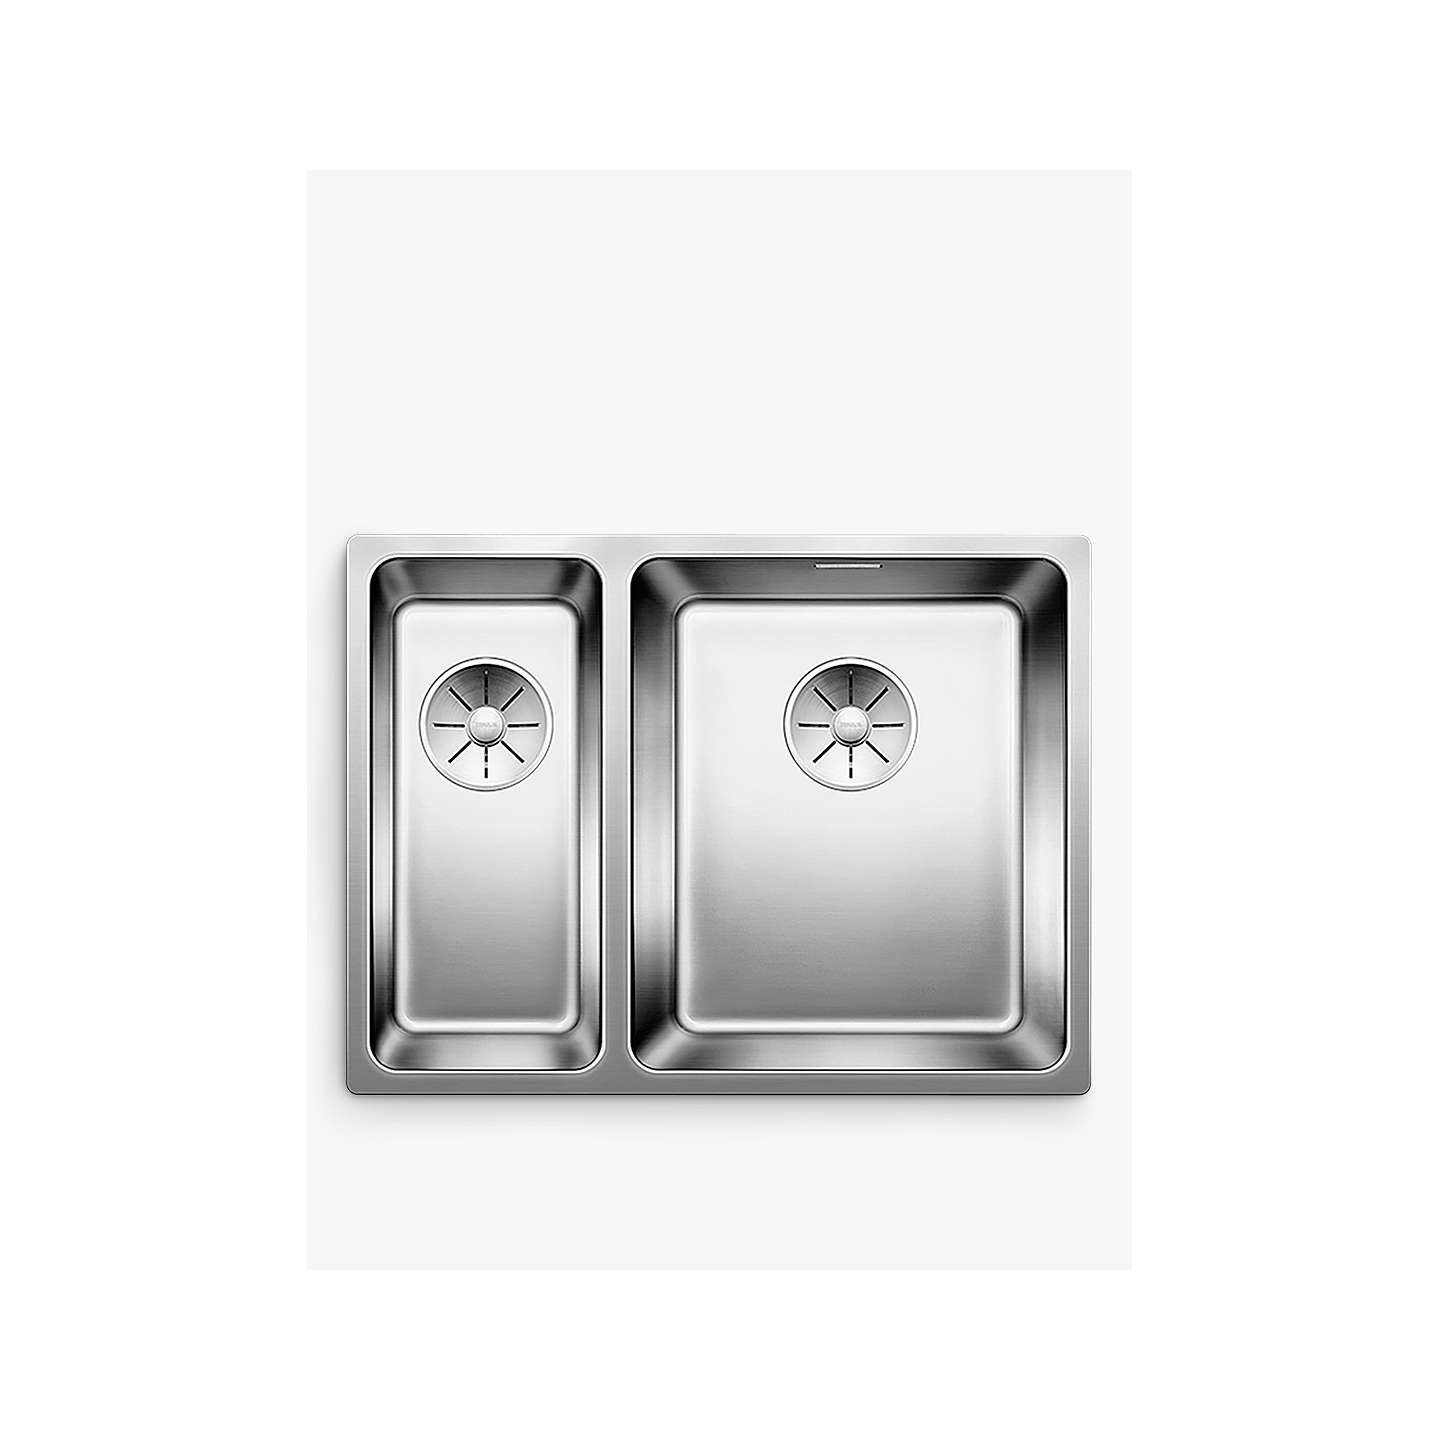 blanco andano 340 180 u 1 5 undermounted kitchen sink with right hand bowl stainless steel at. Black Bedroom Furniture Sets. Home Design Ideas